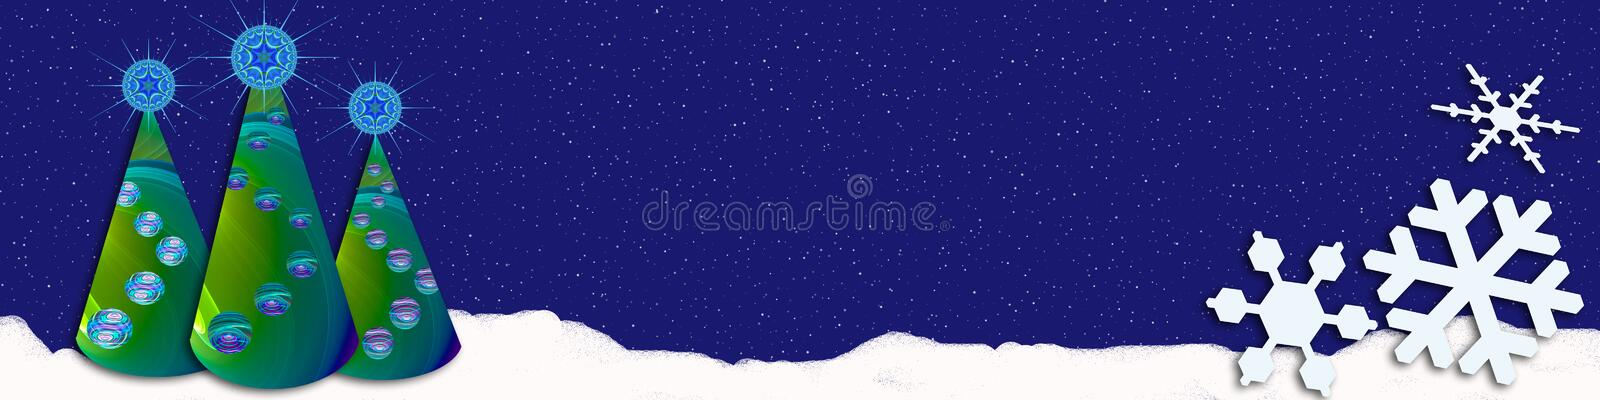 Snowy Christmas banner. This banner / header has a snowy sky and cute decorative trees. The right corner is covered with snowflakes stock illustration